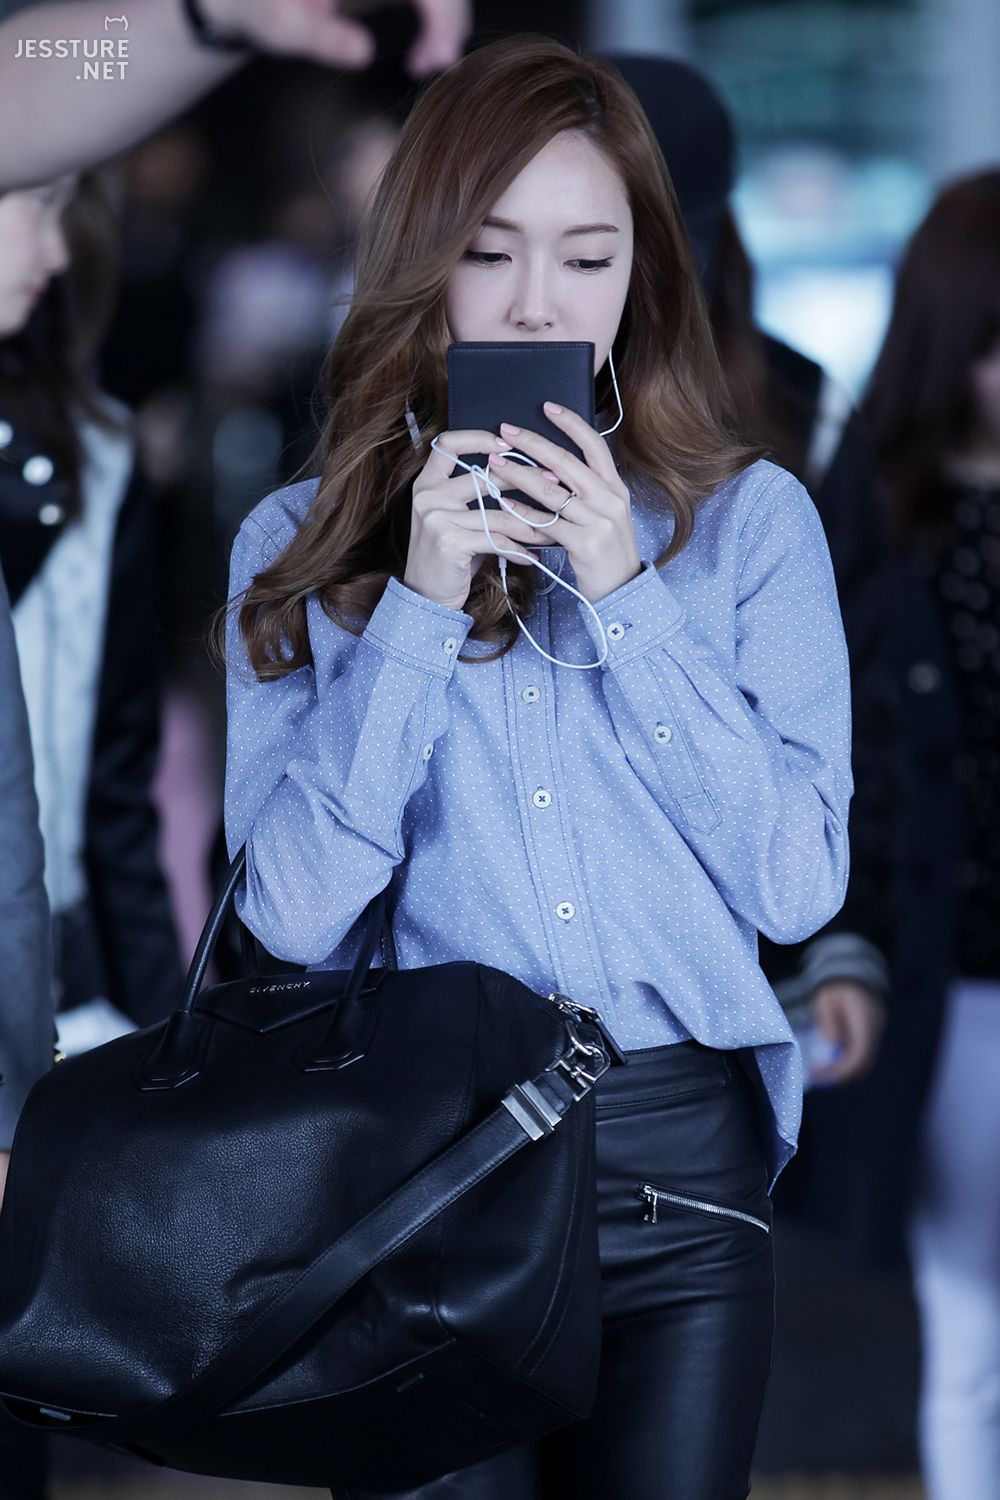 snsd jessica airport fashion 140428 2014 snsd airport